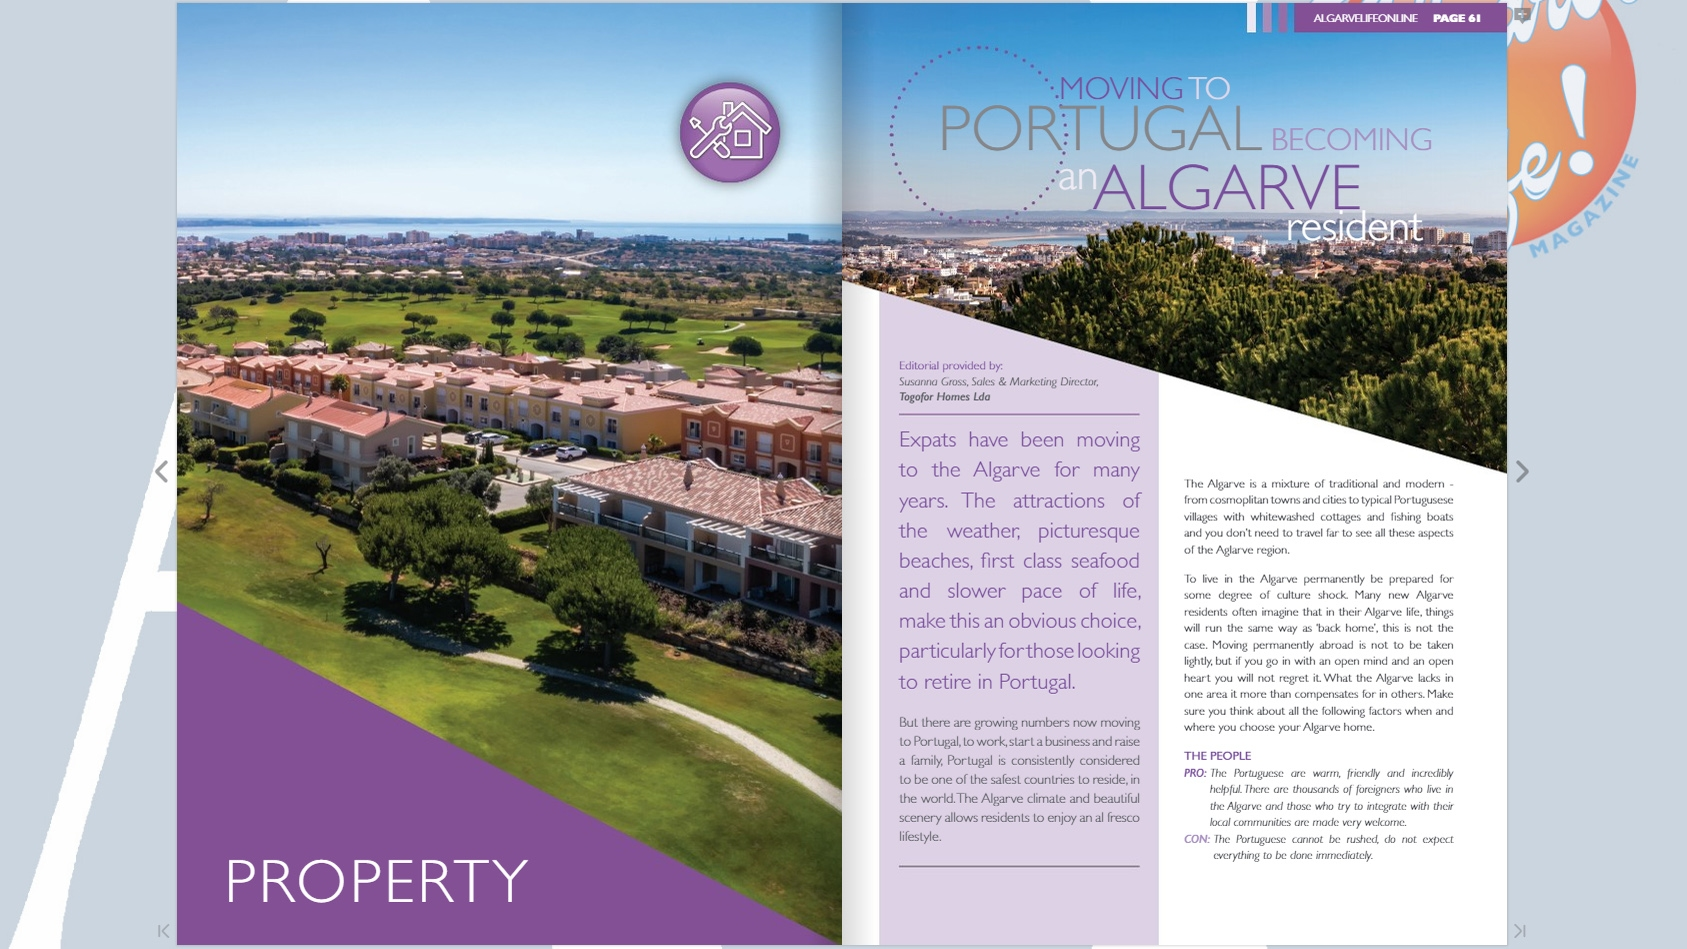 Moving to Portugal – Becoming an Algarve Resident (Algarve Life Magazine - Issue 4)